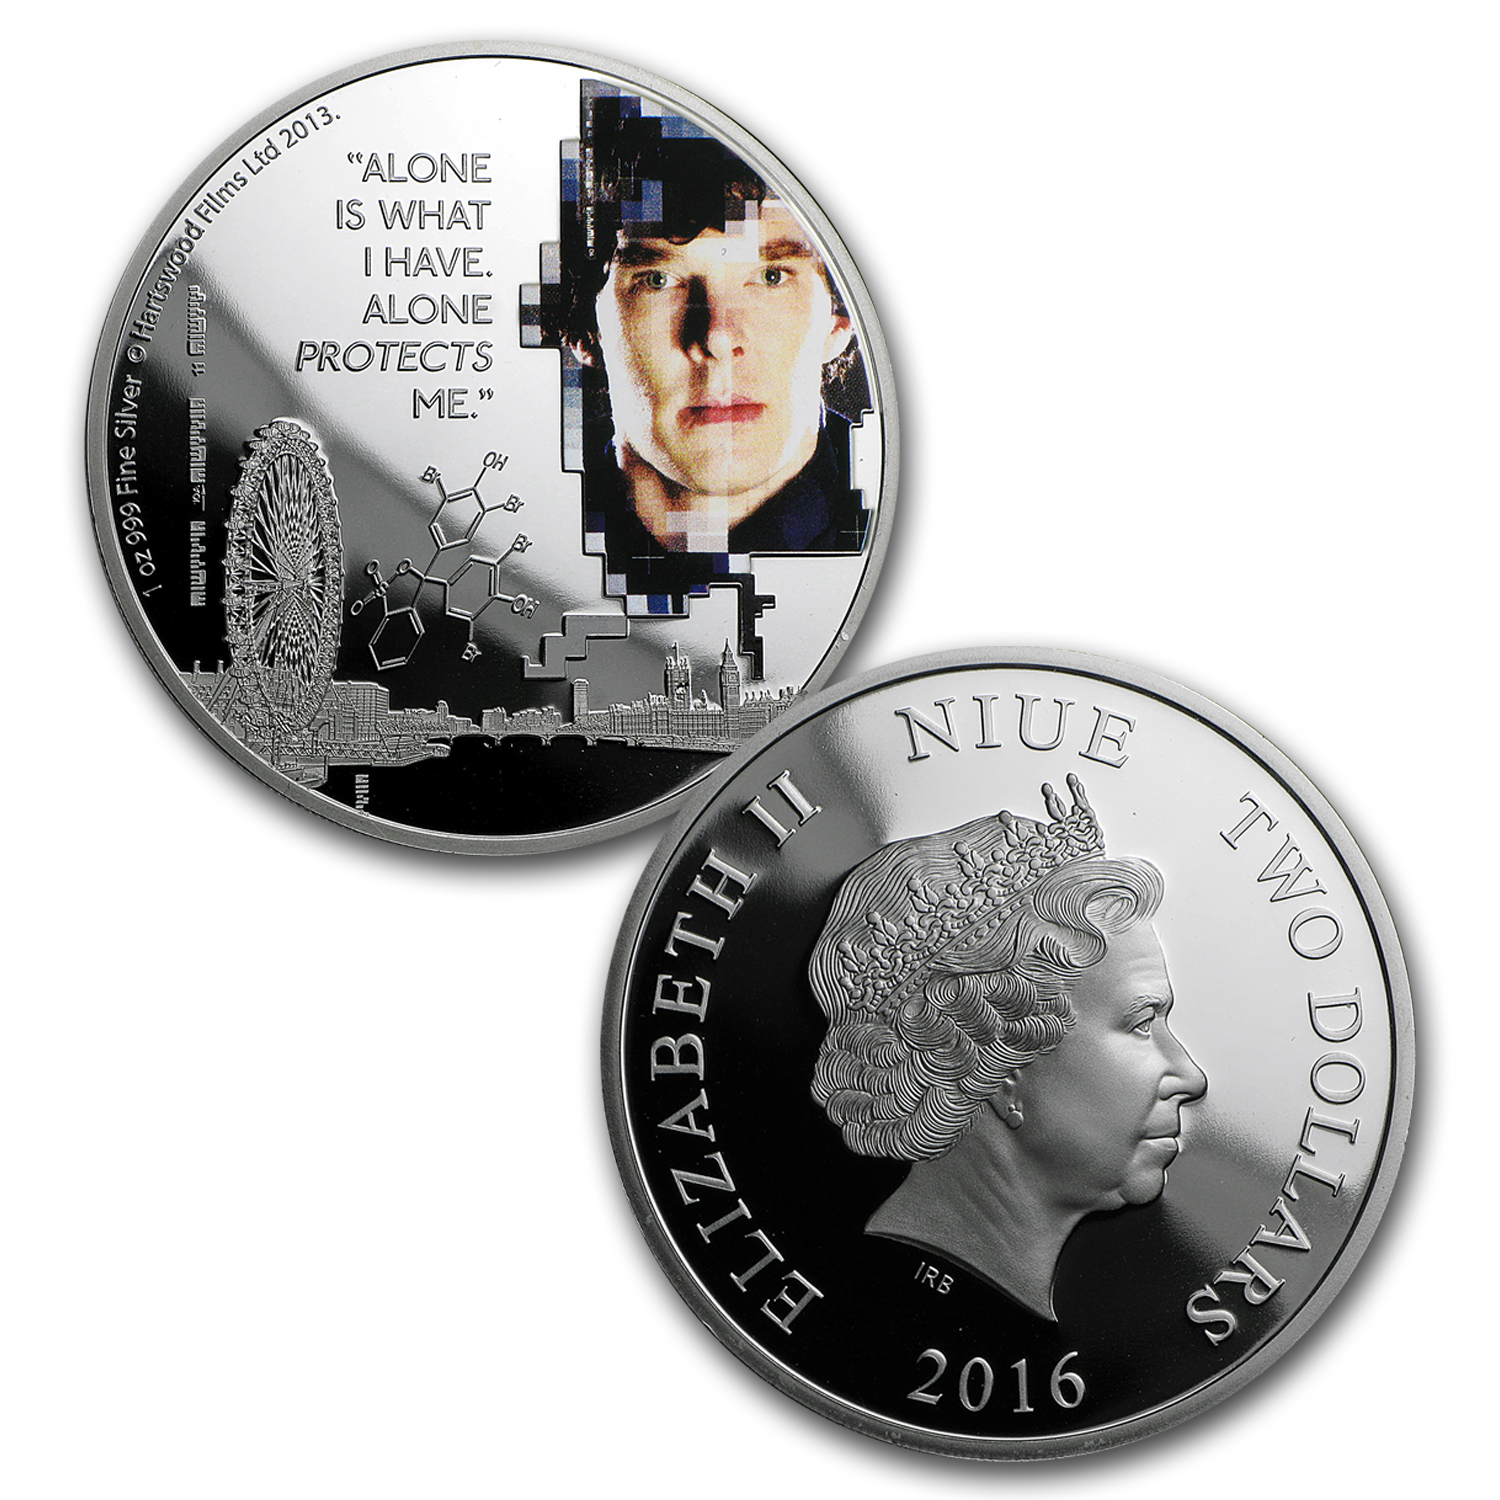 2016 Niue 1 oz Silver 2-Coin Sherlock Holmes Proof Set